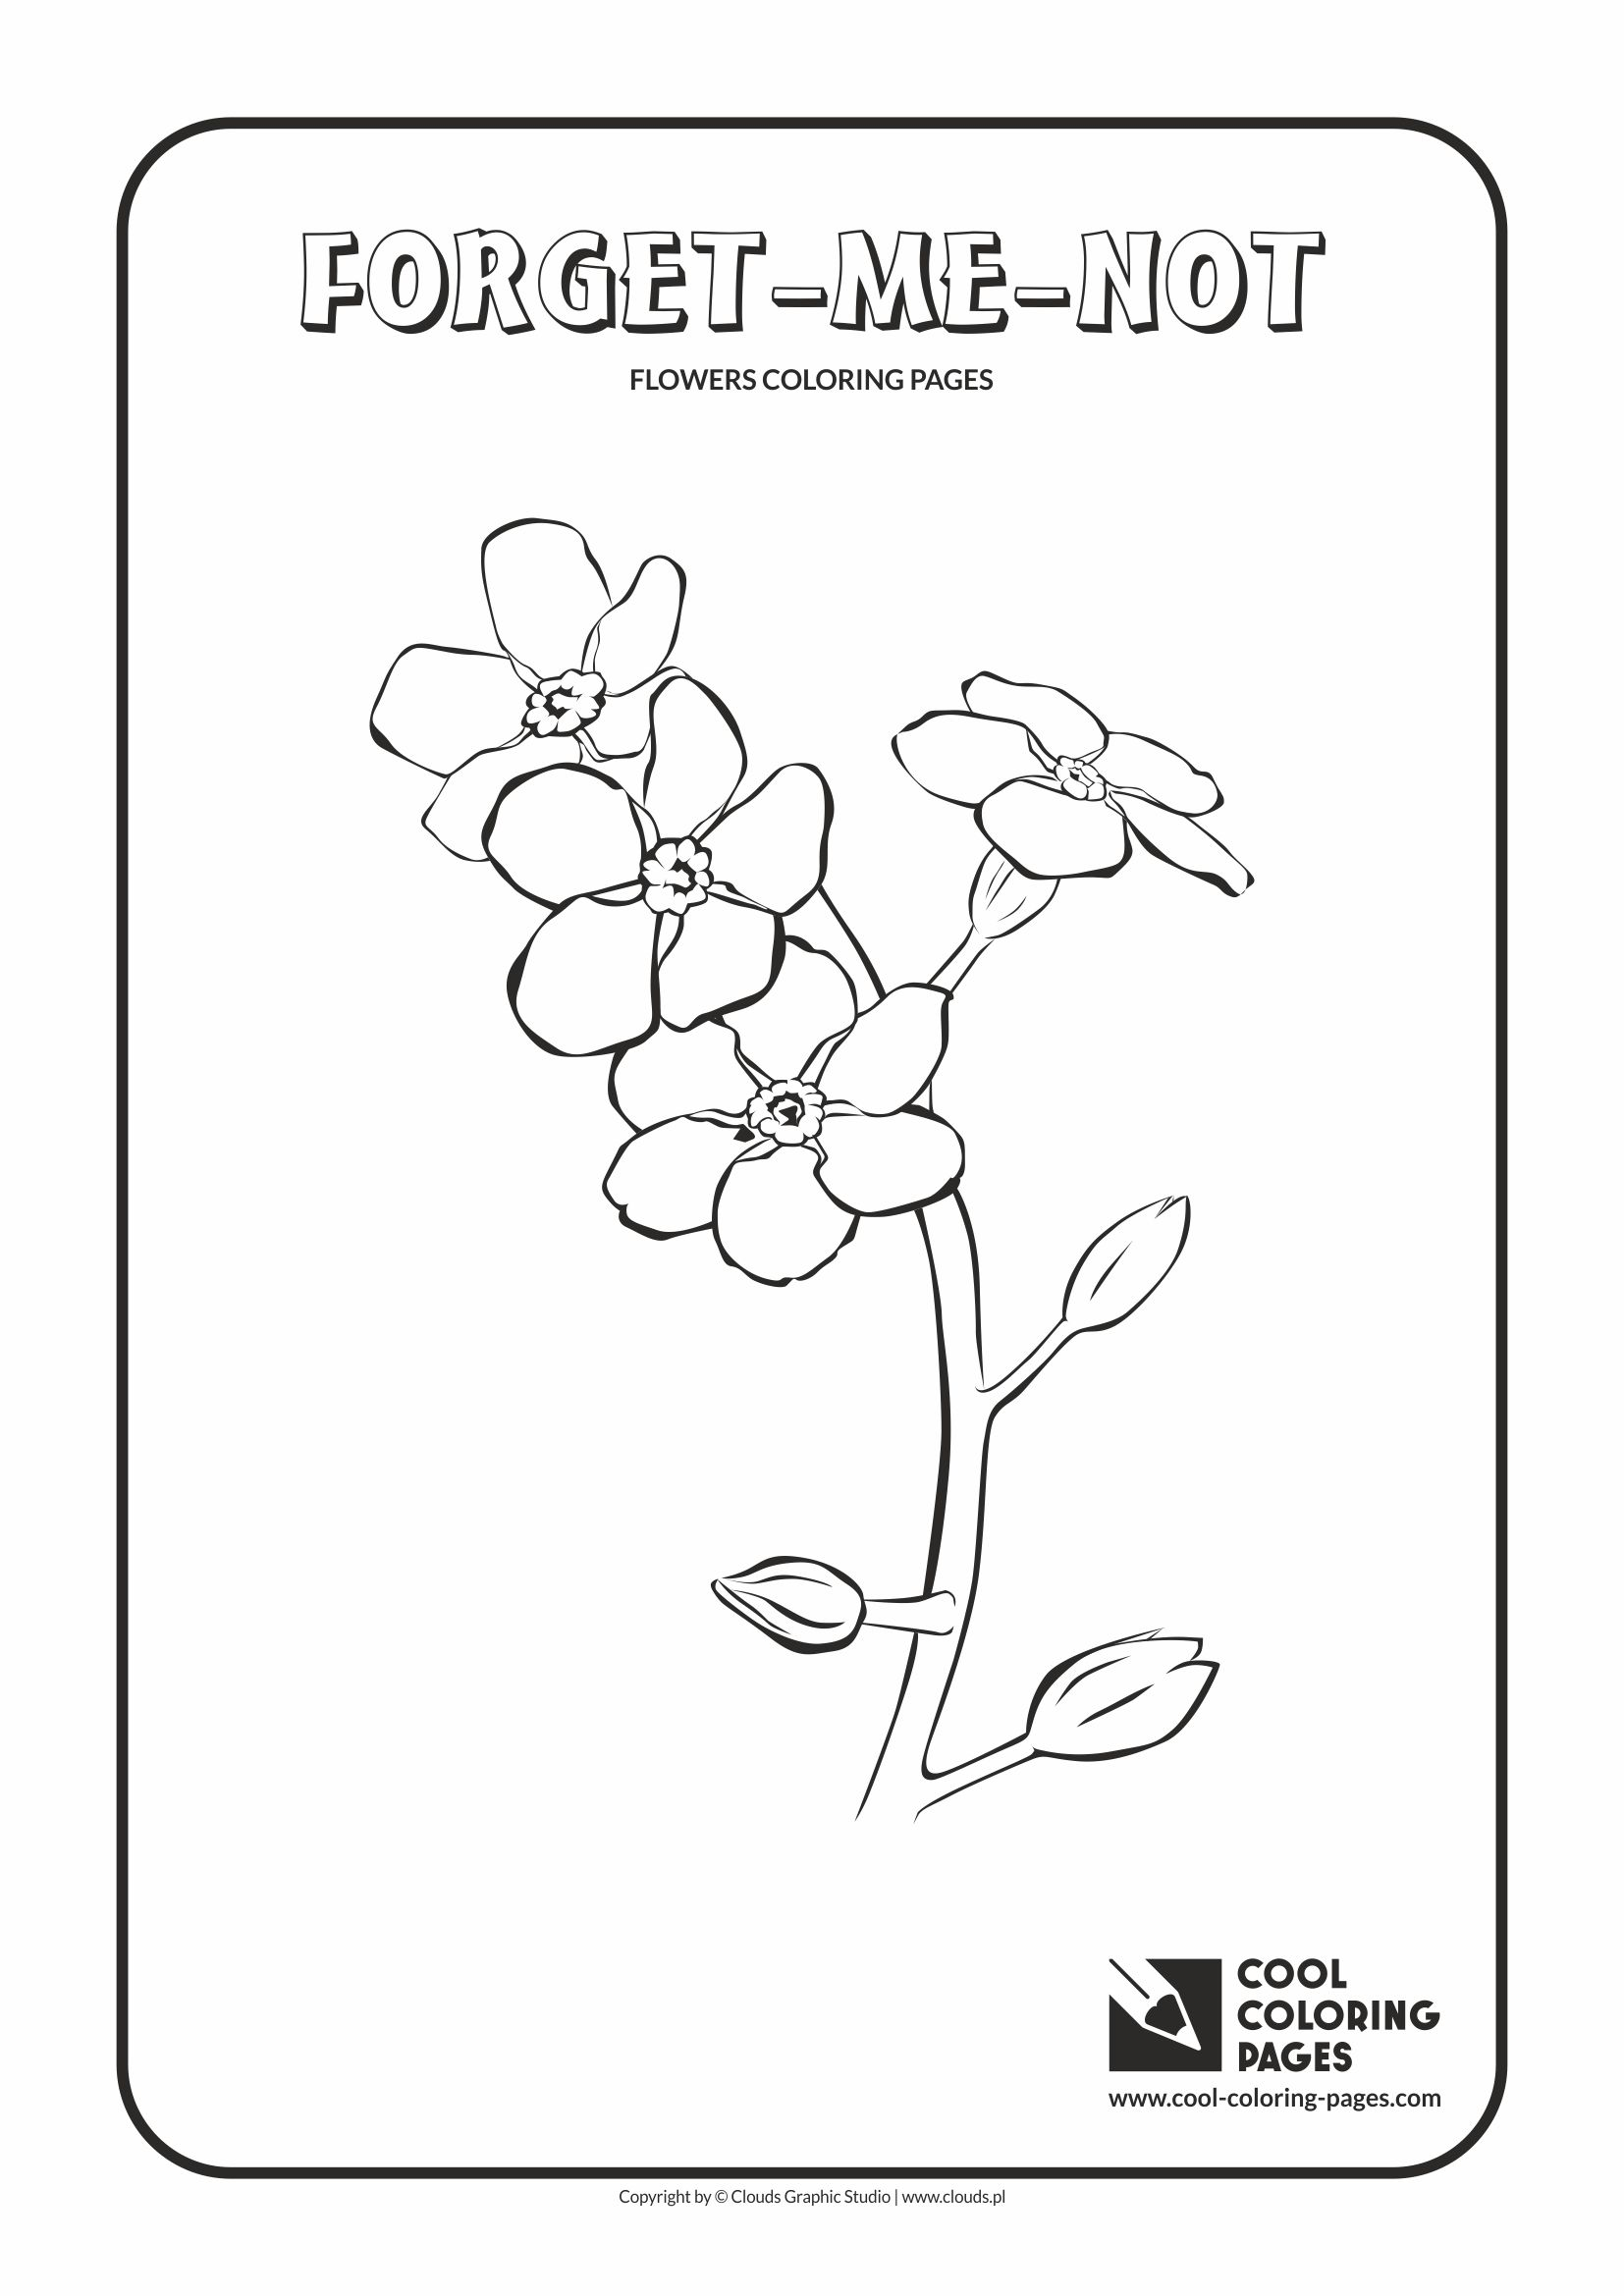 Cool Coloring Pages - Plants / Forget-me-not / Coloring page with forget-me-not